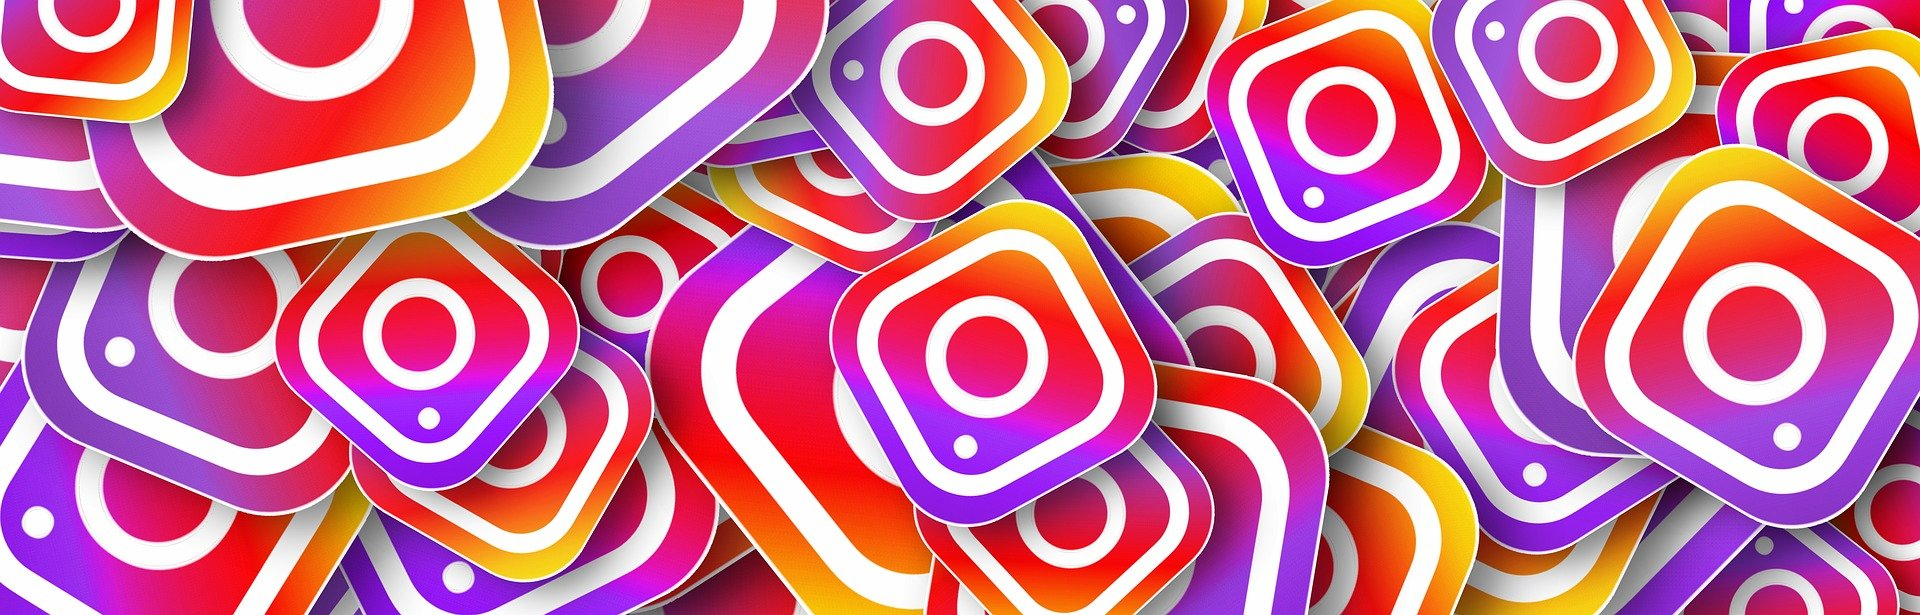 Instagram is getting more boring and cloying